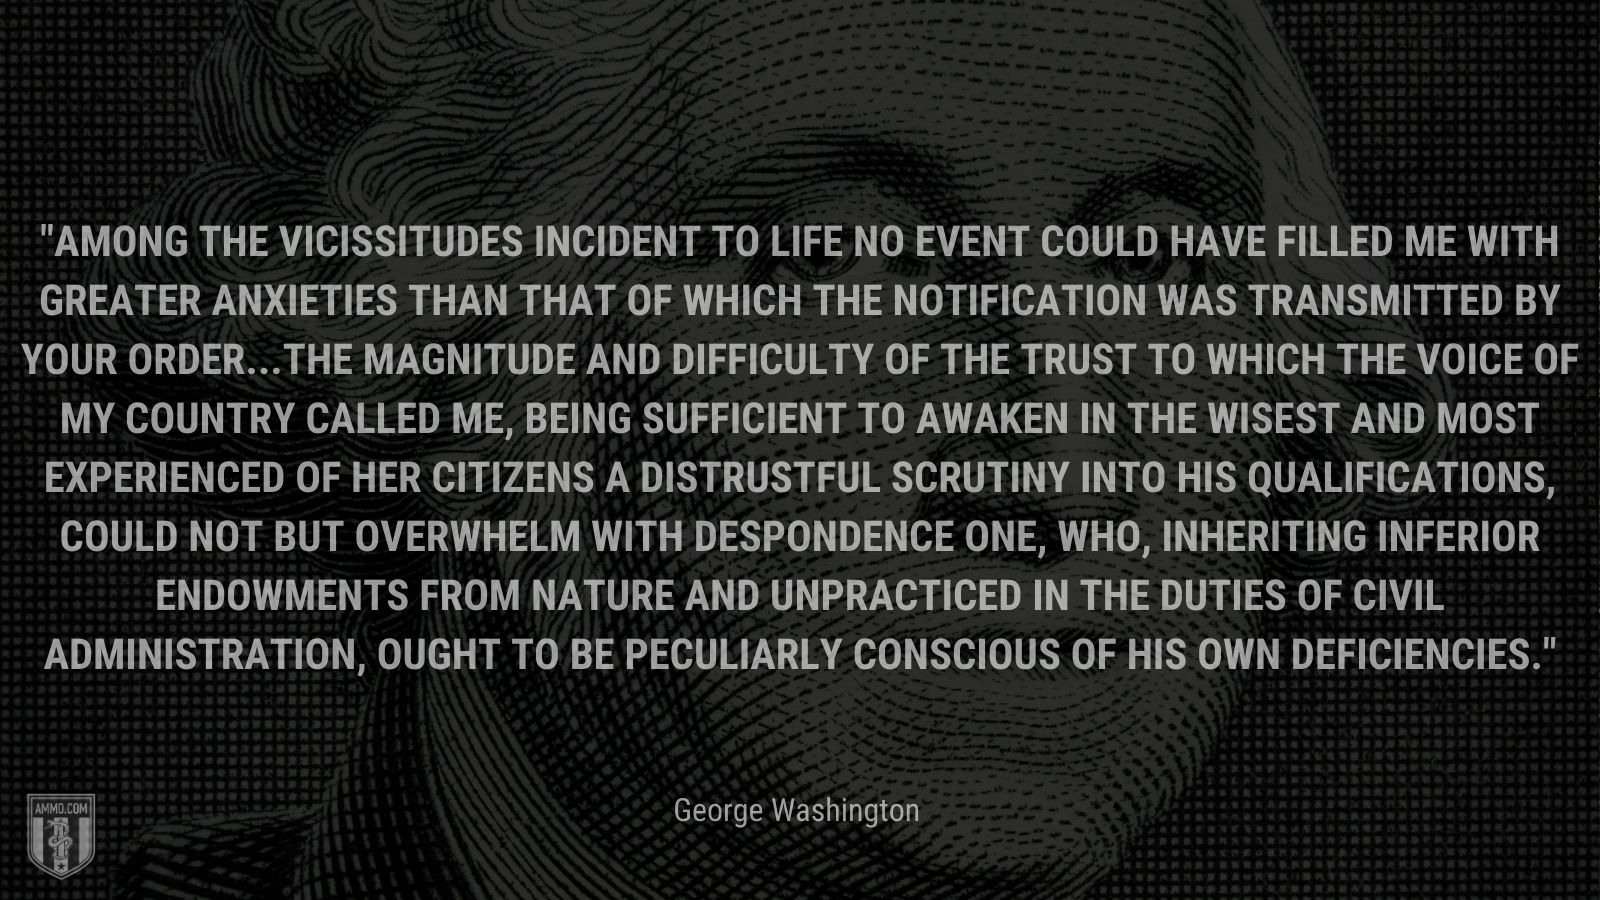 """""""Among the vicissitudes incident to life no event could have filled me with greater anxieties than that of which the notification was transmitted by your order...The magnitude and difficulty of the trust to which the voice of my country called me, being sufficient to awaken in the wisest and most experienced of her citizens a distrustful scrutiny into his qualifications, could not but overwhelm with despondence one, who, inheriting inferior endowments from nature and unpracticed in the duties of civil administration, ought to be peculiarly conscious of his own deficiencies."""" - George Washington"""